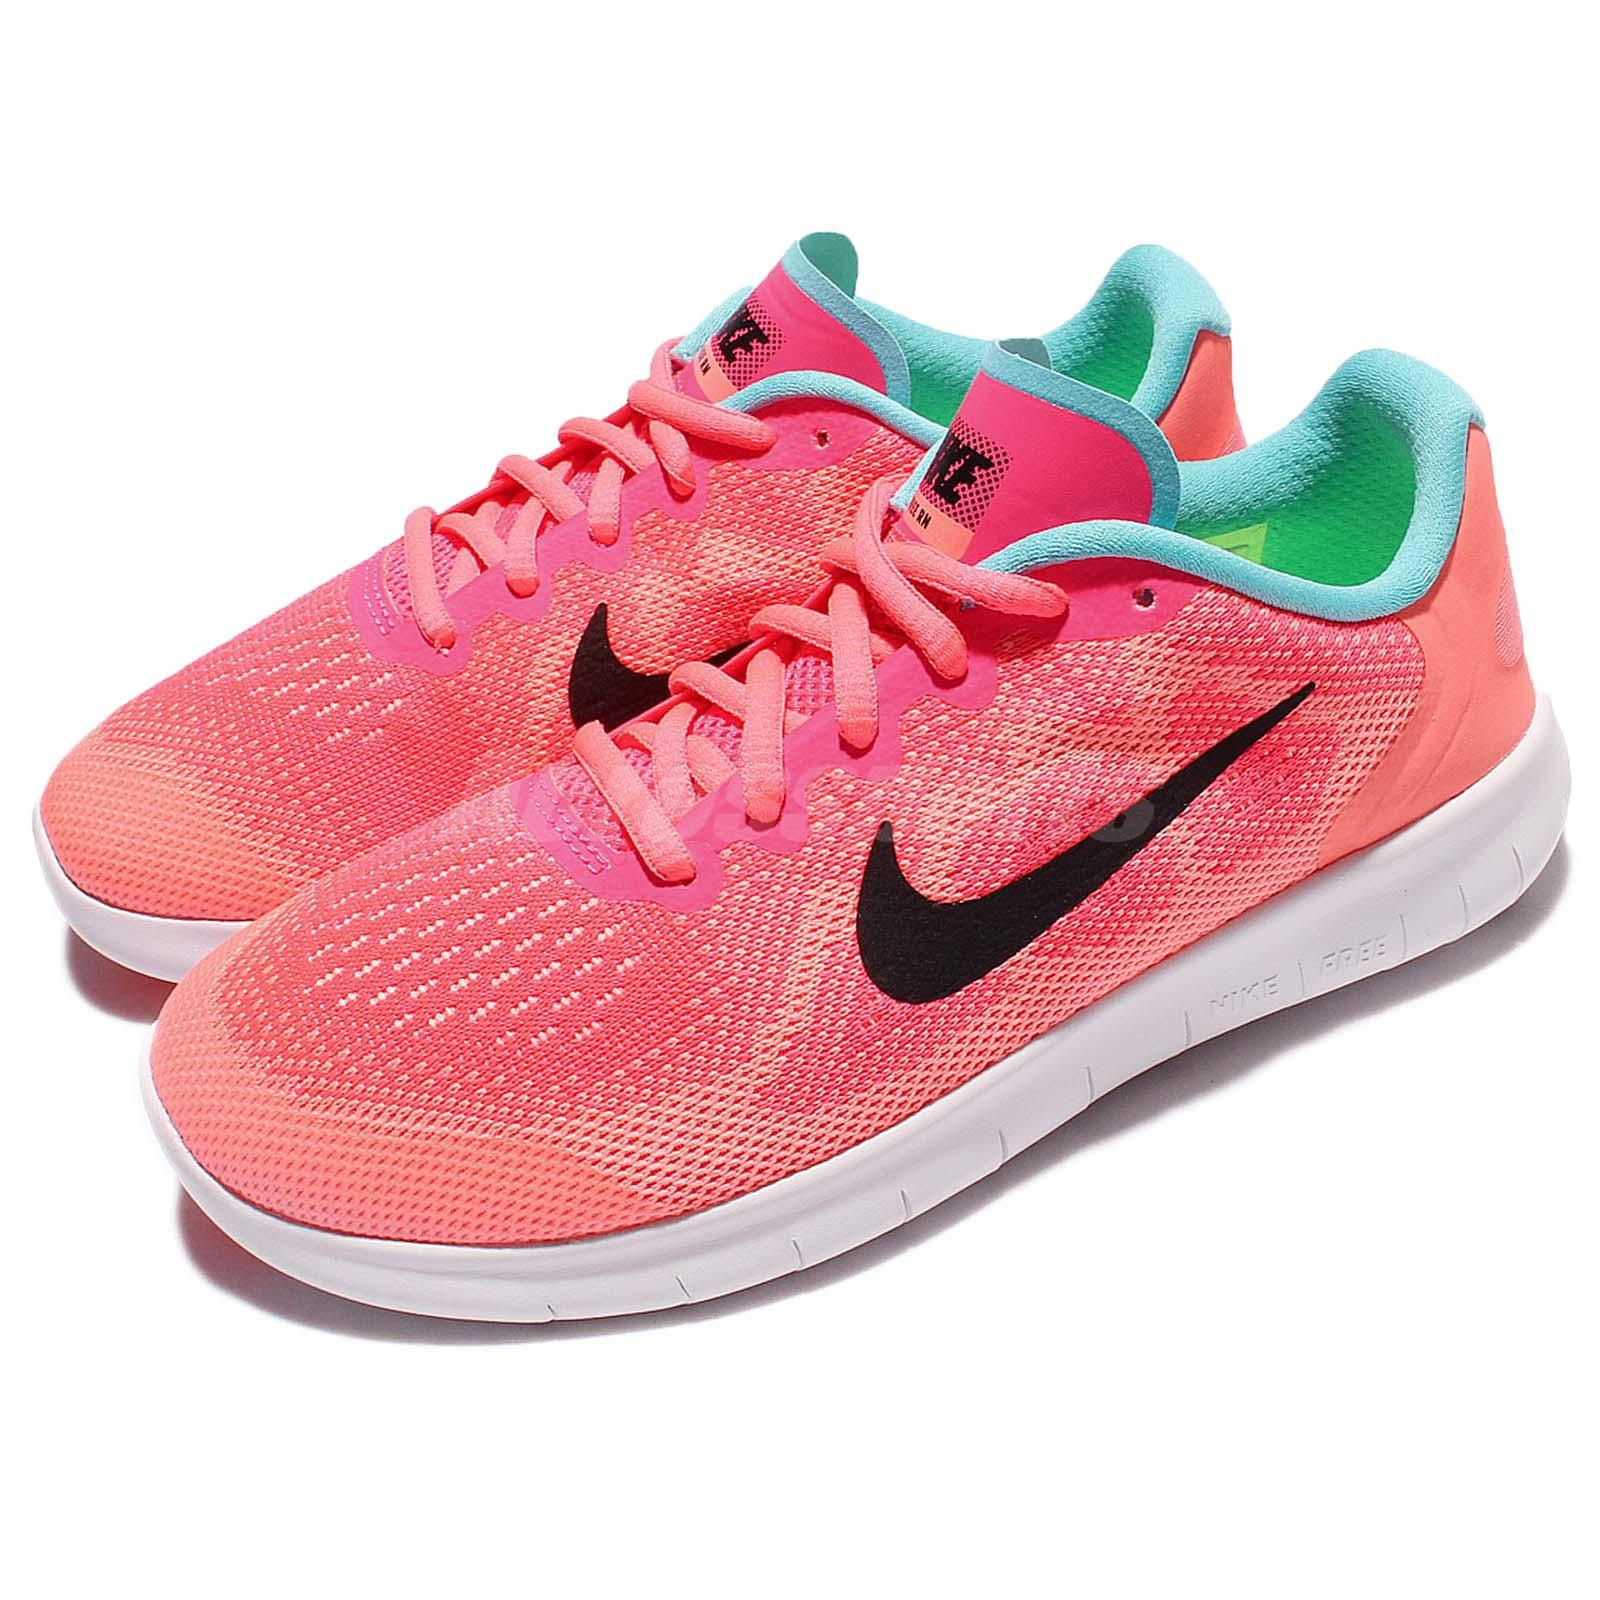 huge selection of b8404 6ad53 Details about Nike Nike Free RN 2017 GS Pink Kids Girls Boys Running Shoes  Sneakers 904258-600